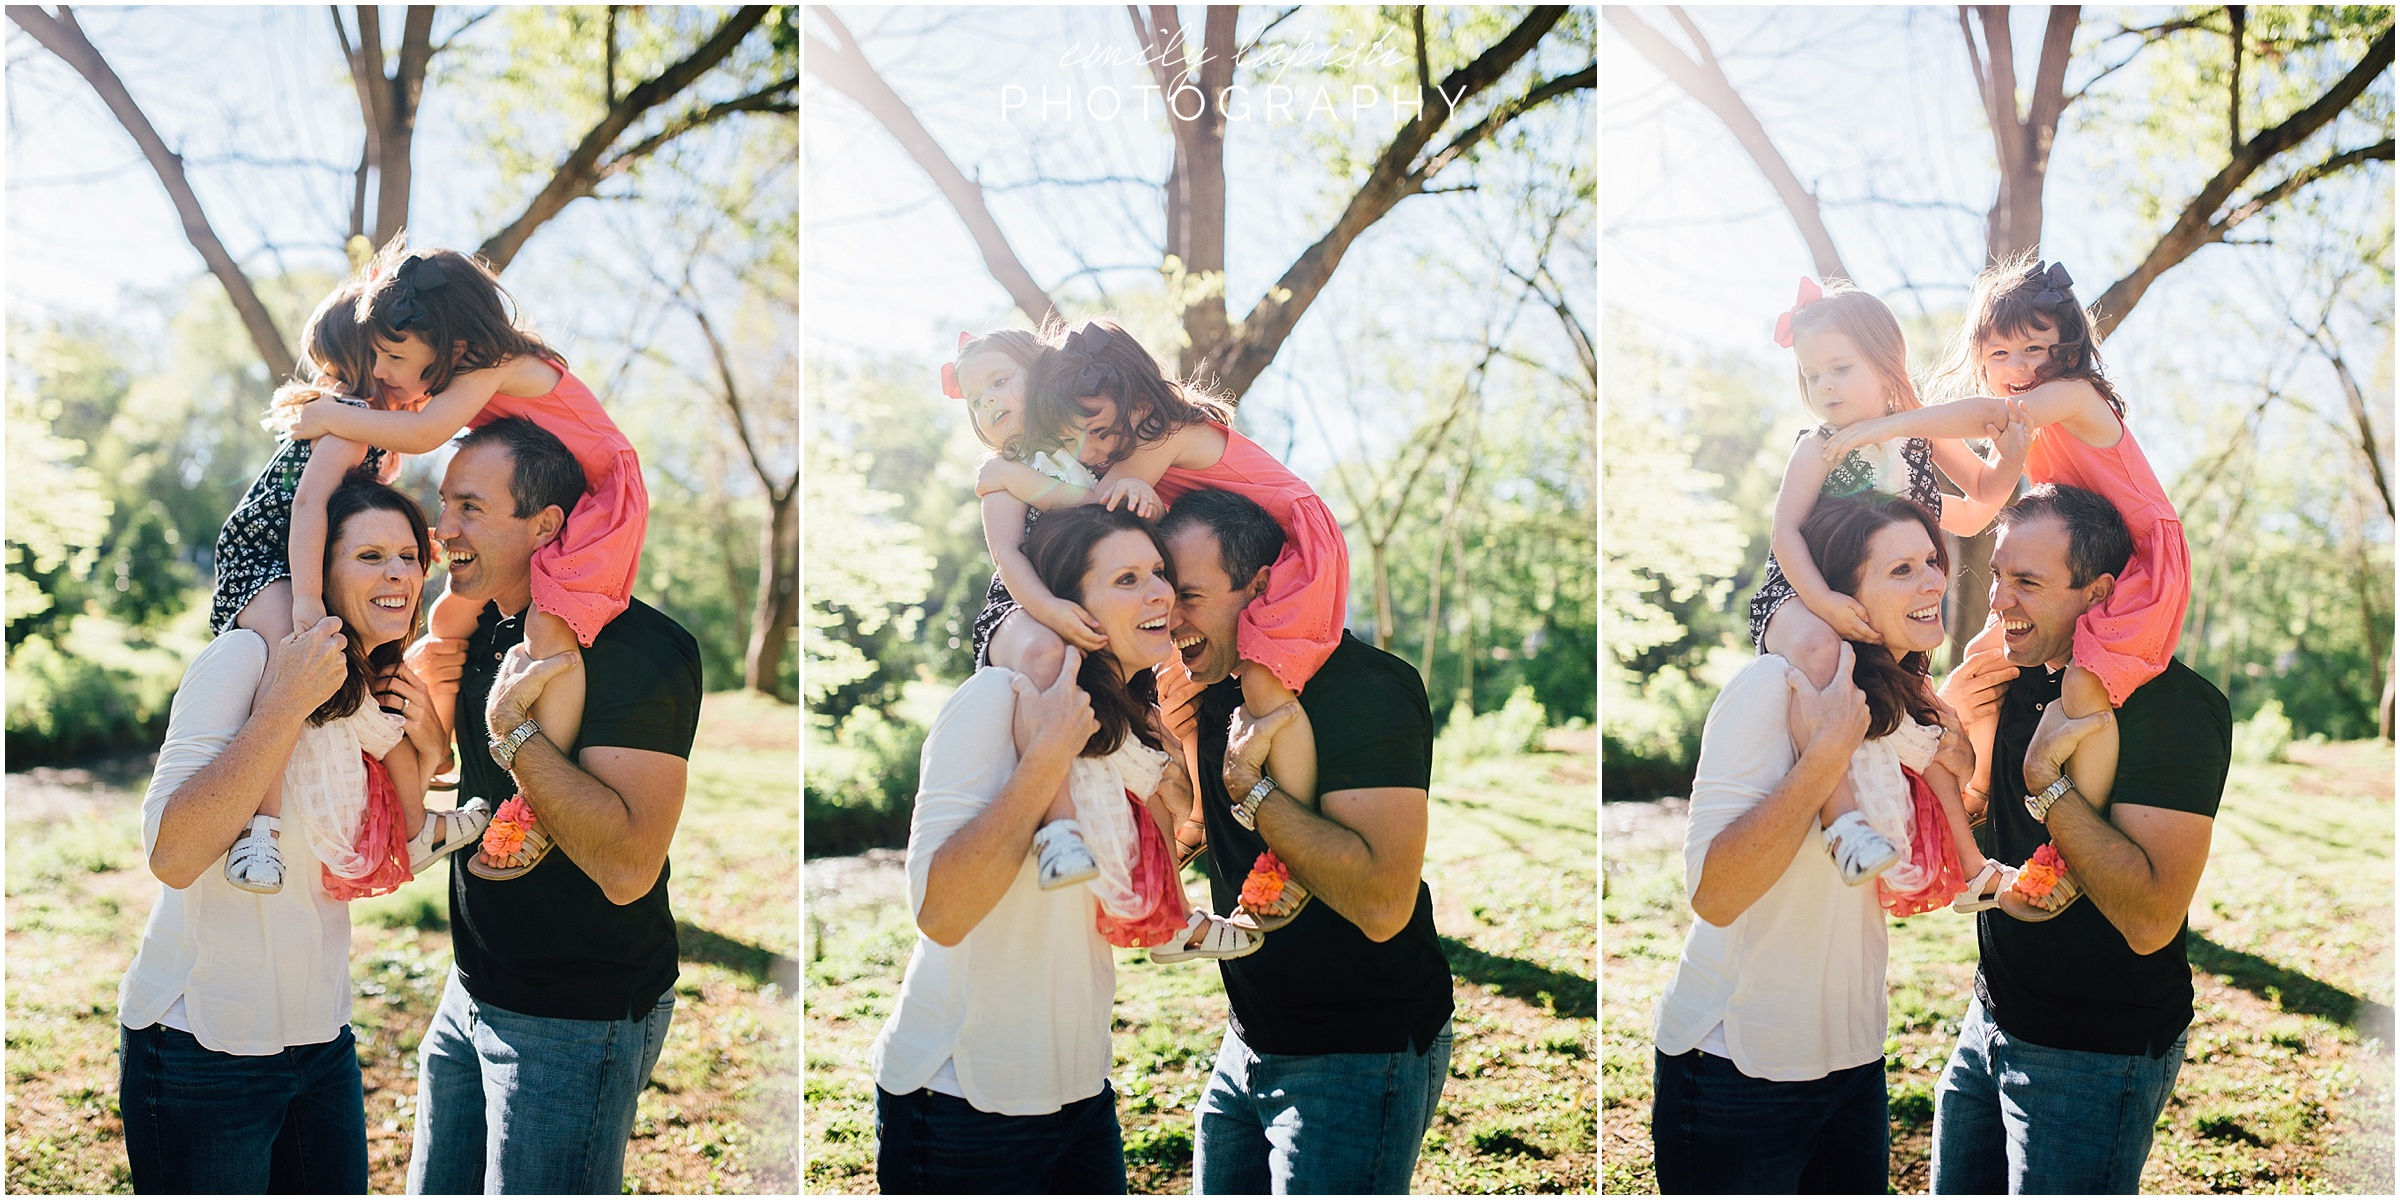 lifestyle family photography by Emily Lapish Photography in Chattanooga TN_0031